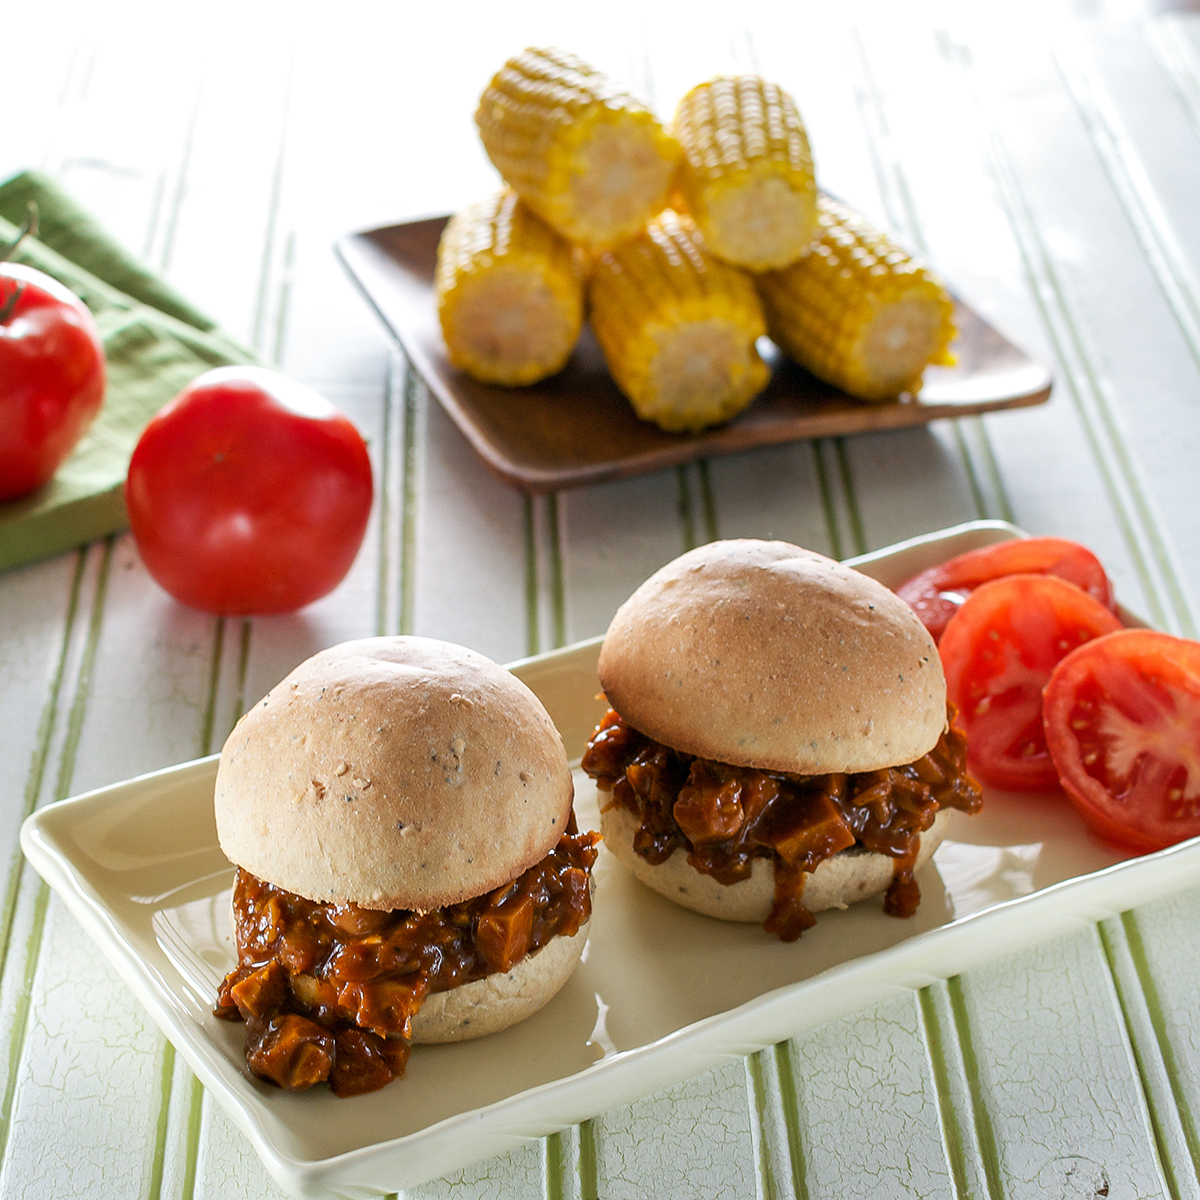 BBQ Jack Sandwiches from Cook the Pantry by Robin Robertson